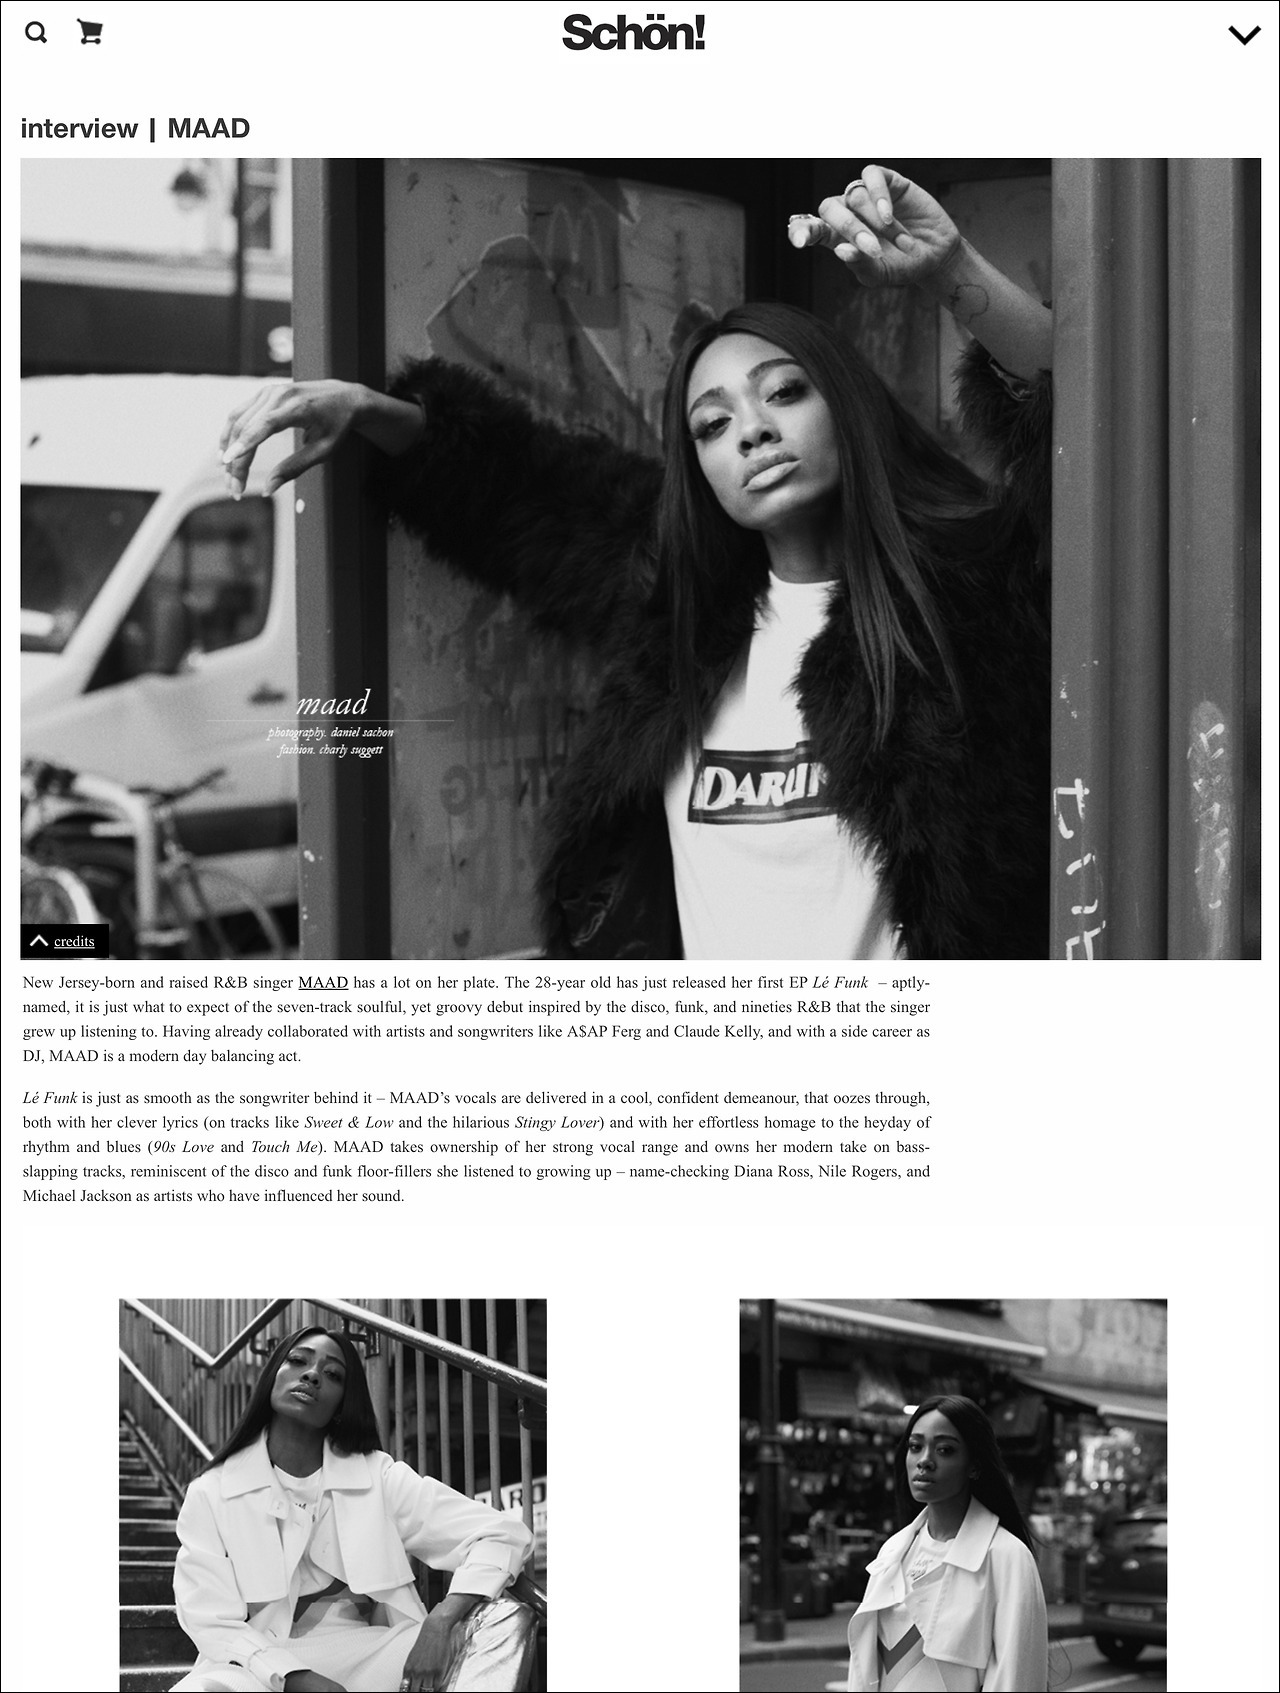 OUR DARLING TEE HAS BEEN FEATURED IN SCHON MAGAZINE WORN BY THE R&B SINGER MAAD. SEE THE ARTICLE  HERE .